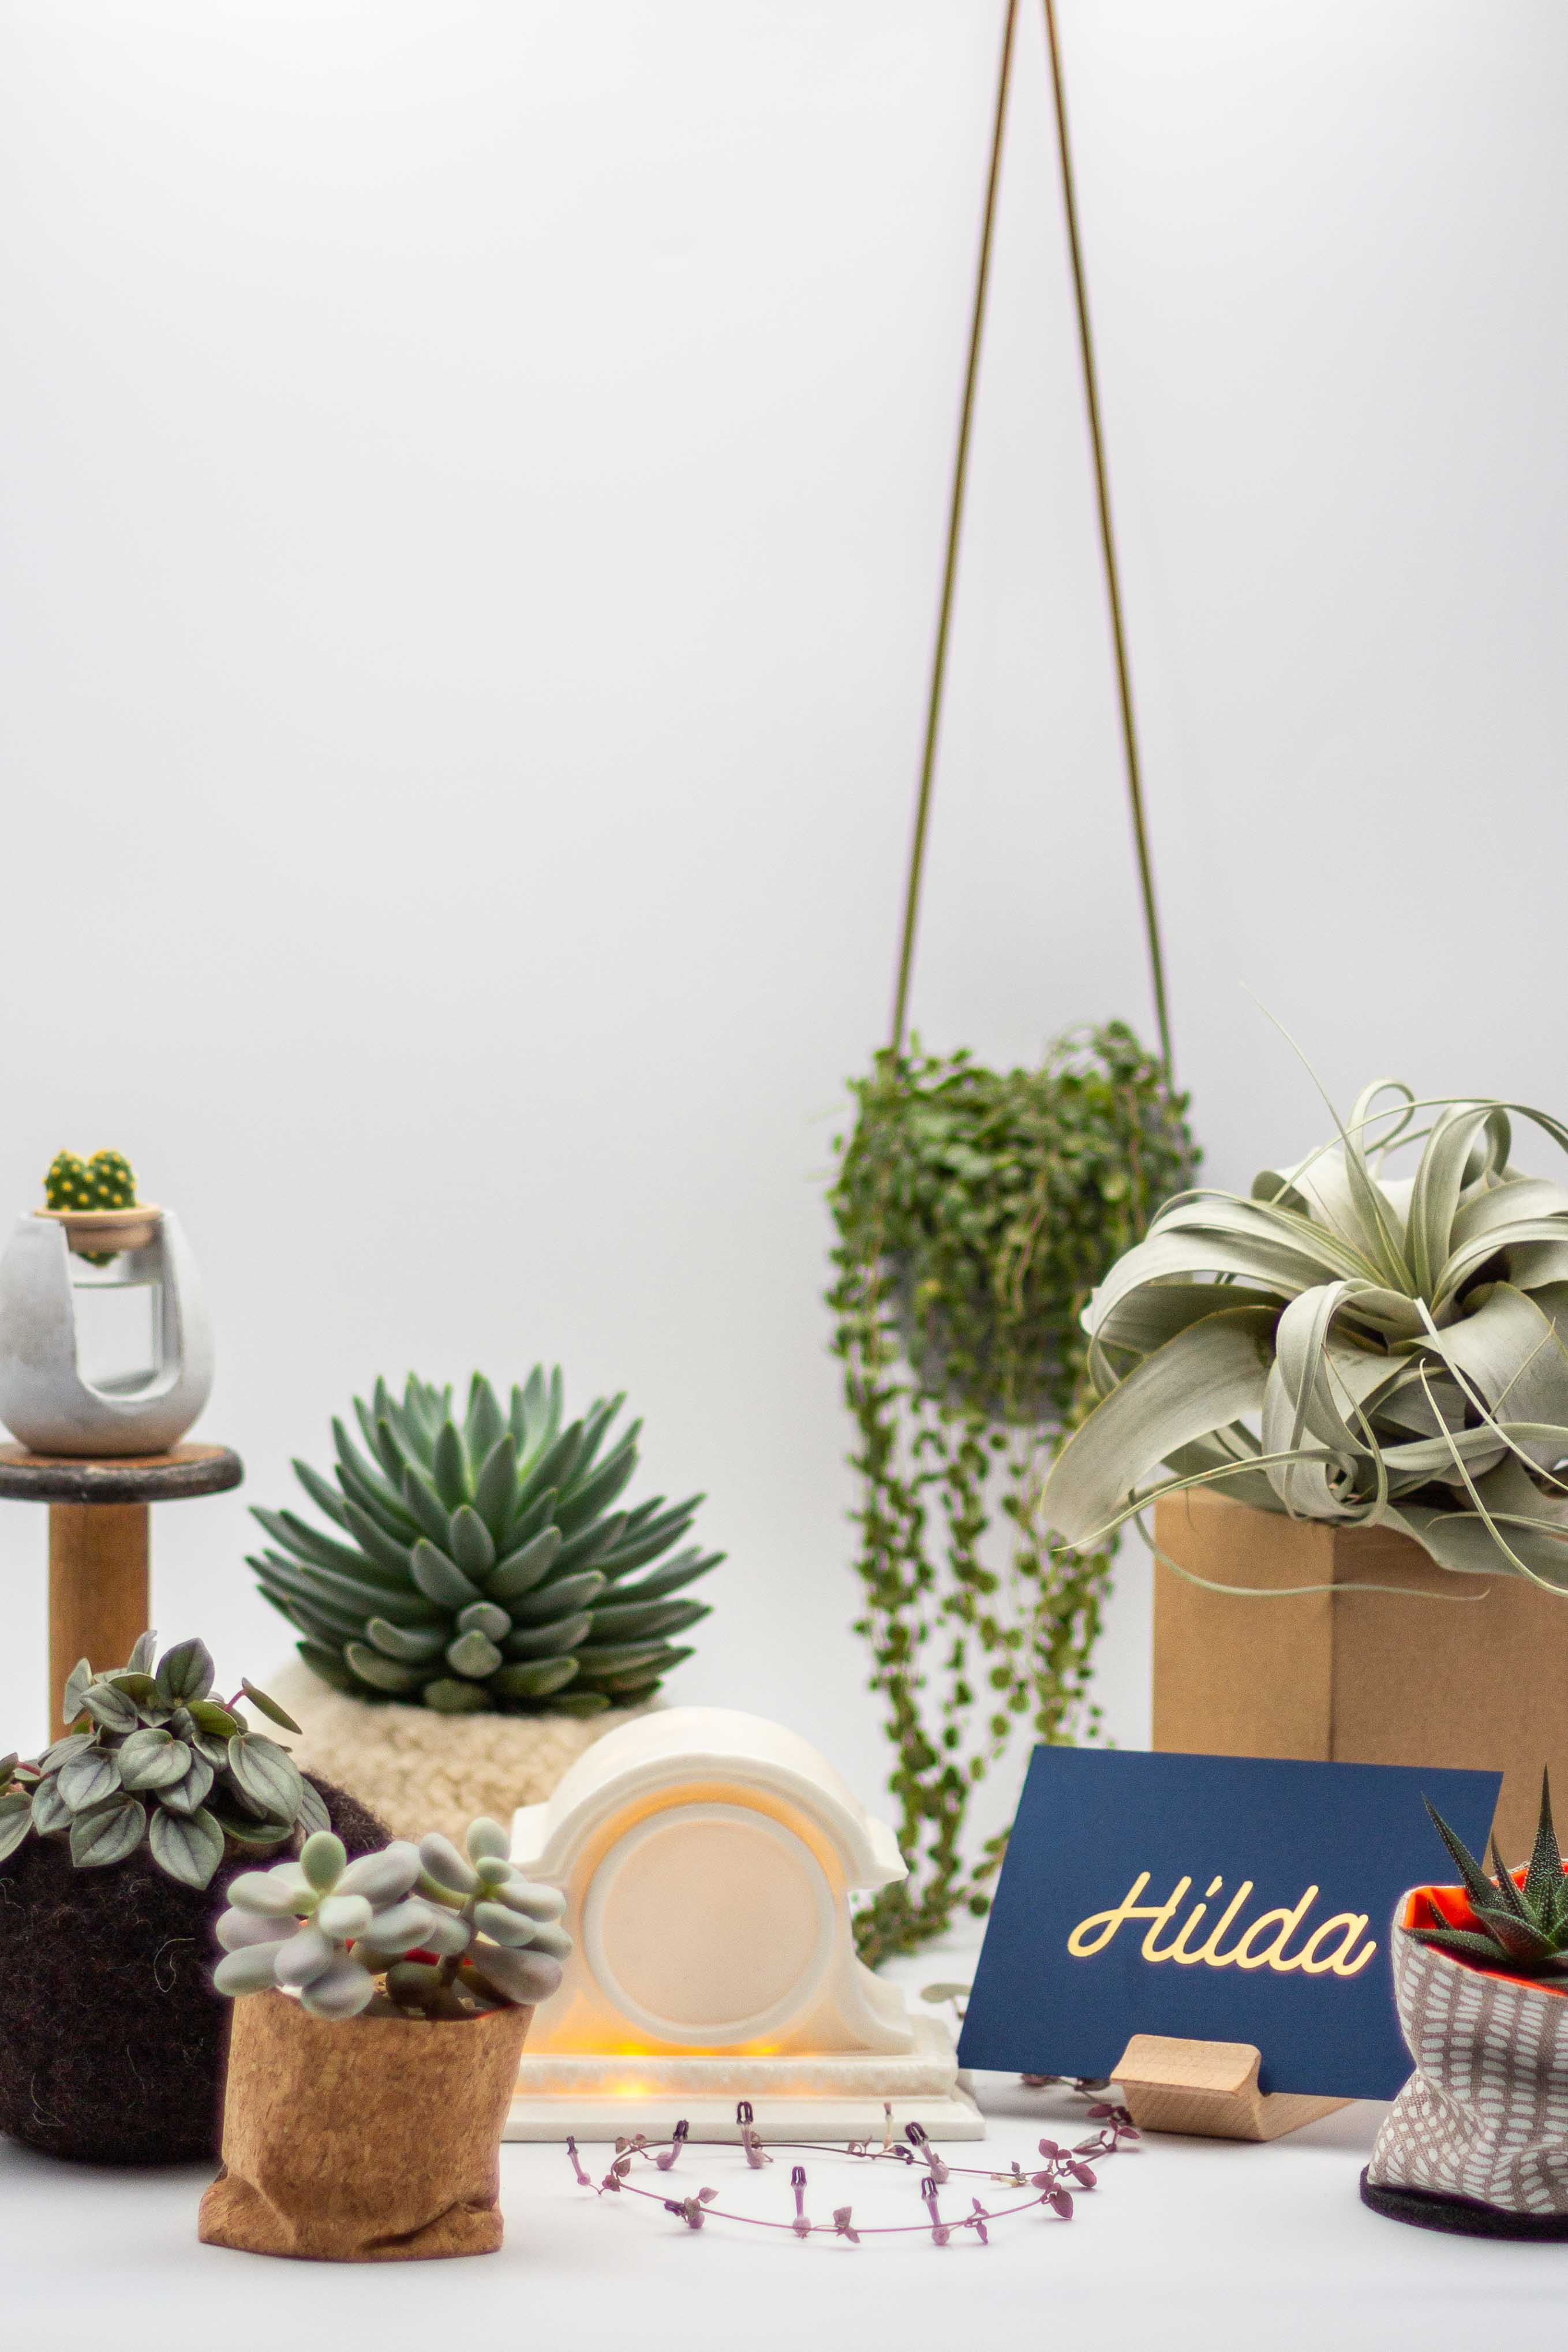 A series of more complex plants are shown with some of the products we stock that are harder to find at more mainstream stores.